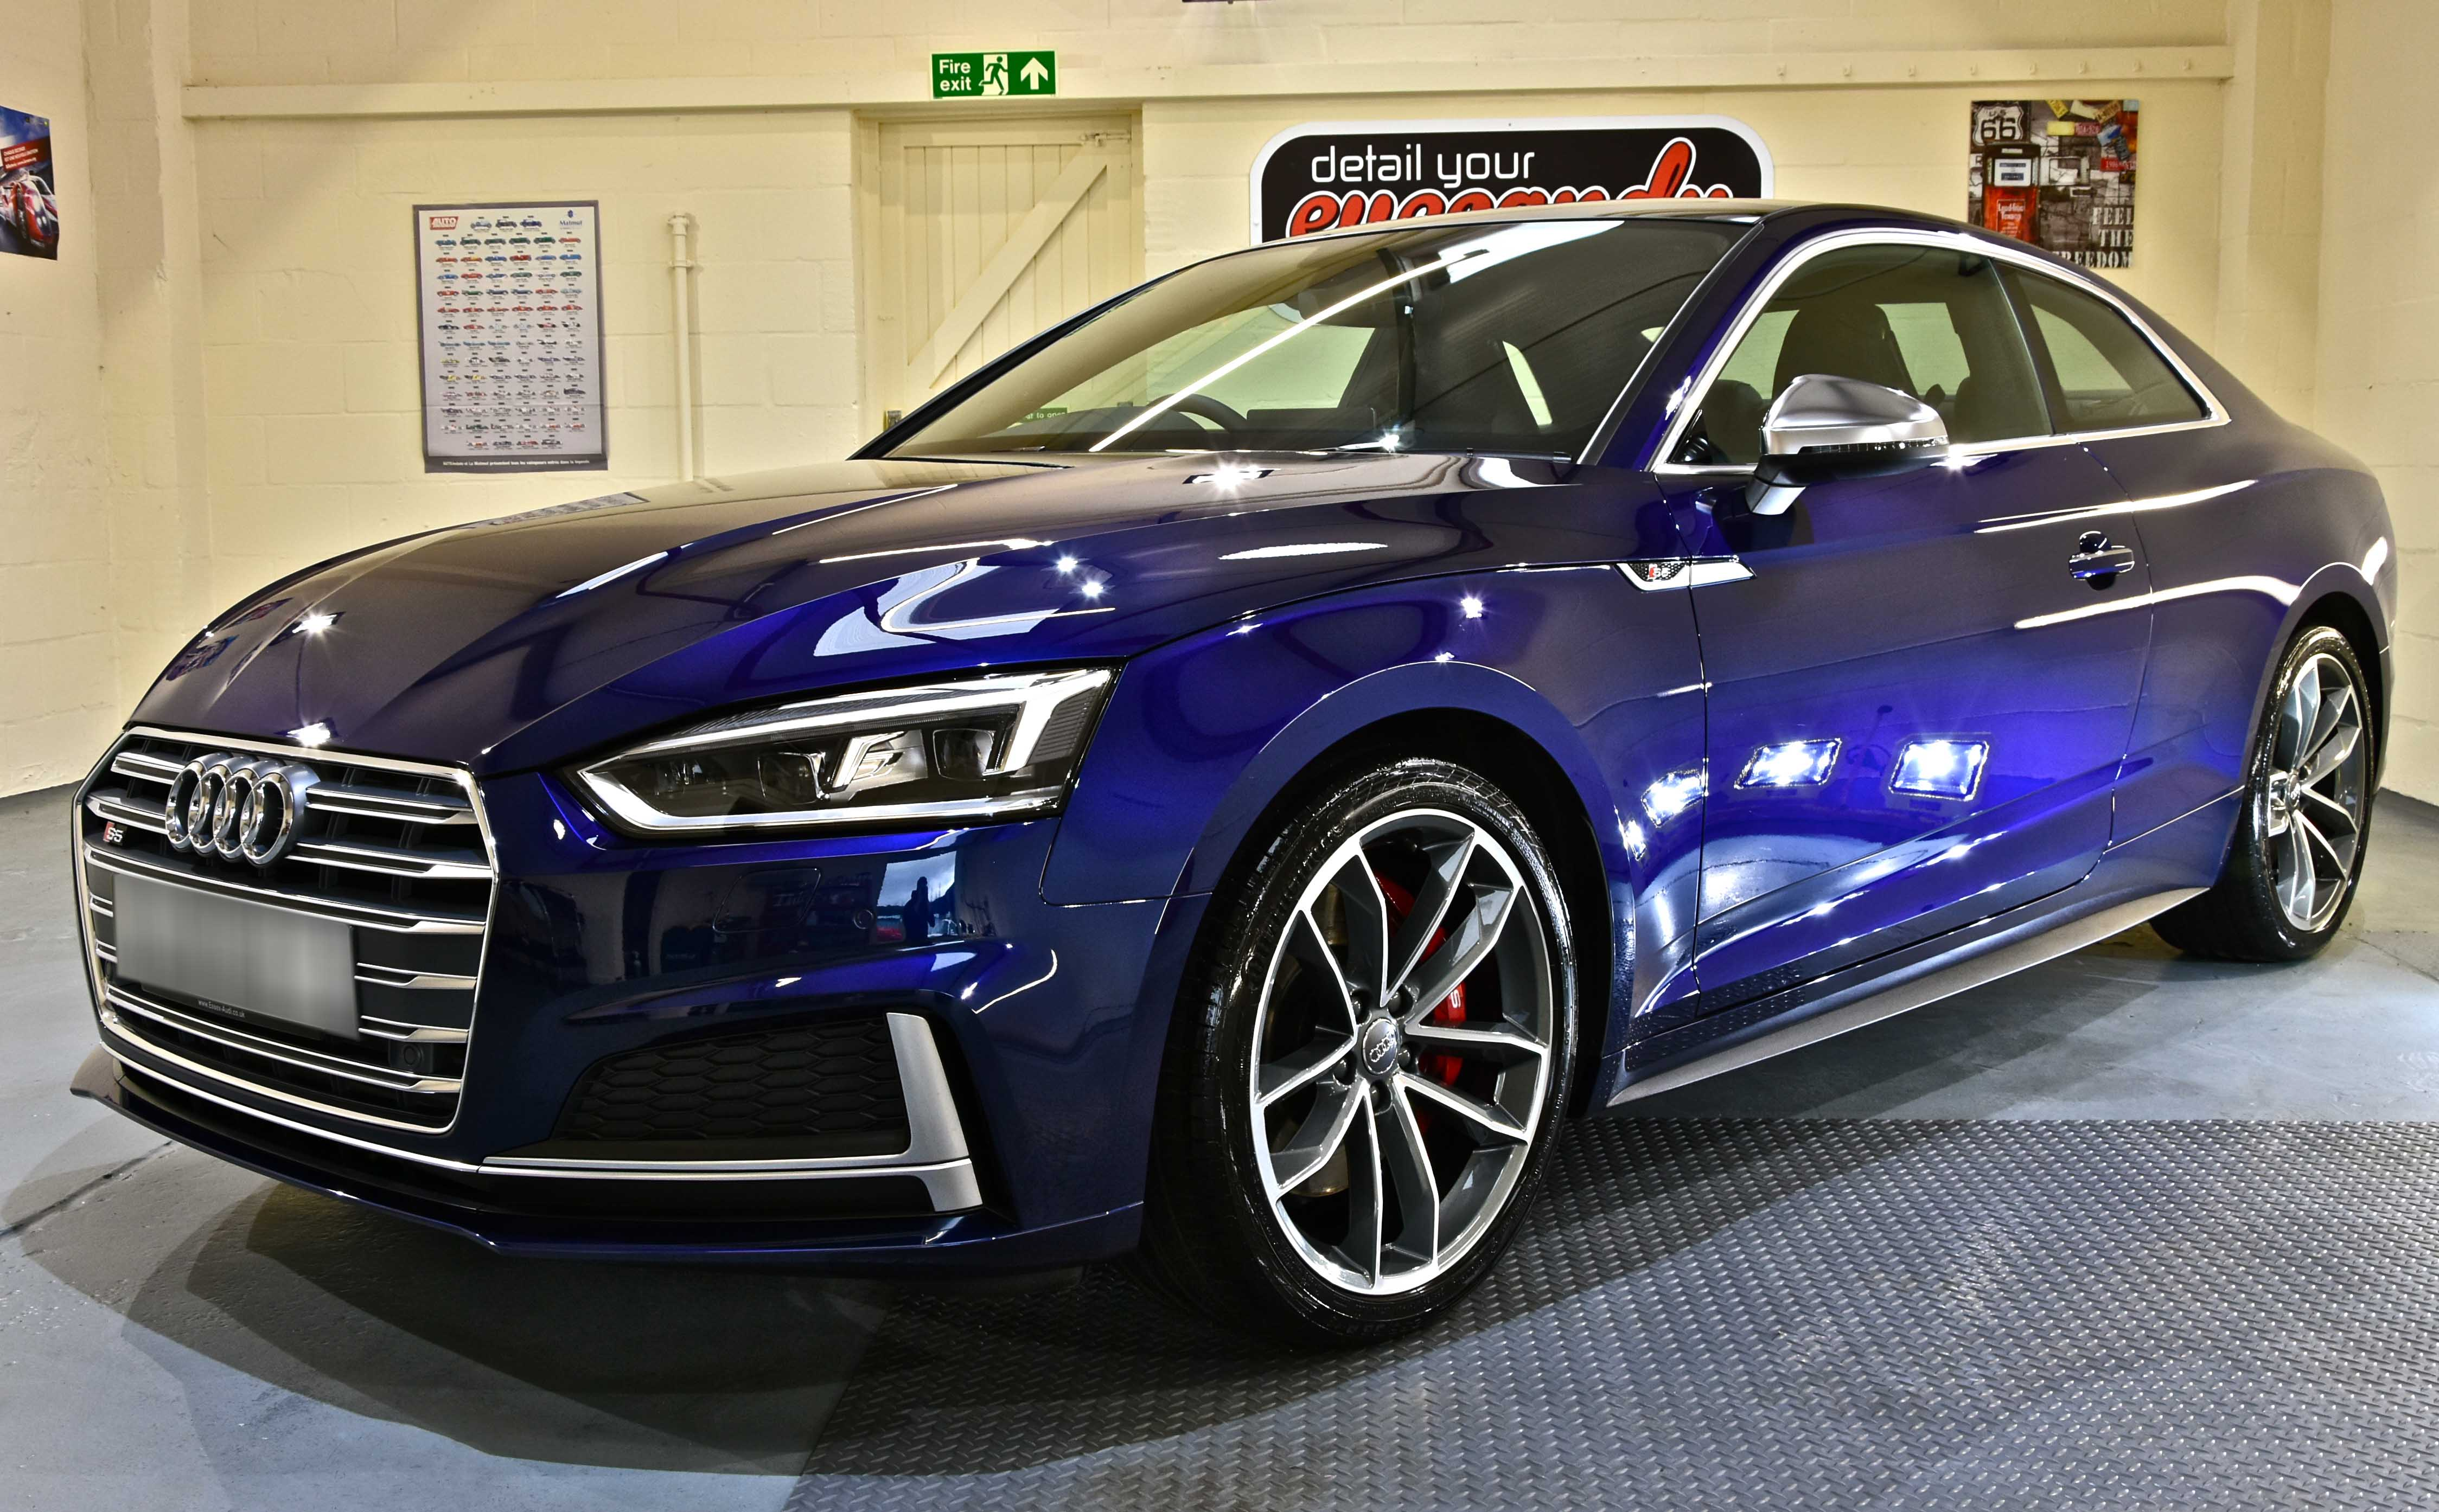 Audi S5 New Car Enhancement and Protection Detail with Gtechniq Crystal Serum Light and EXOv3